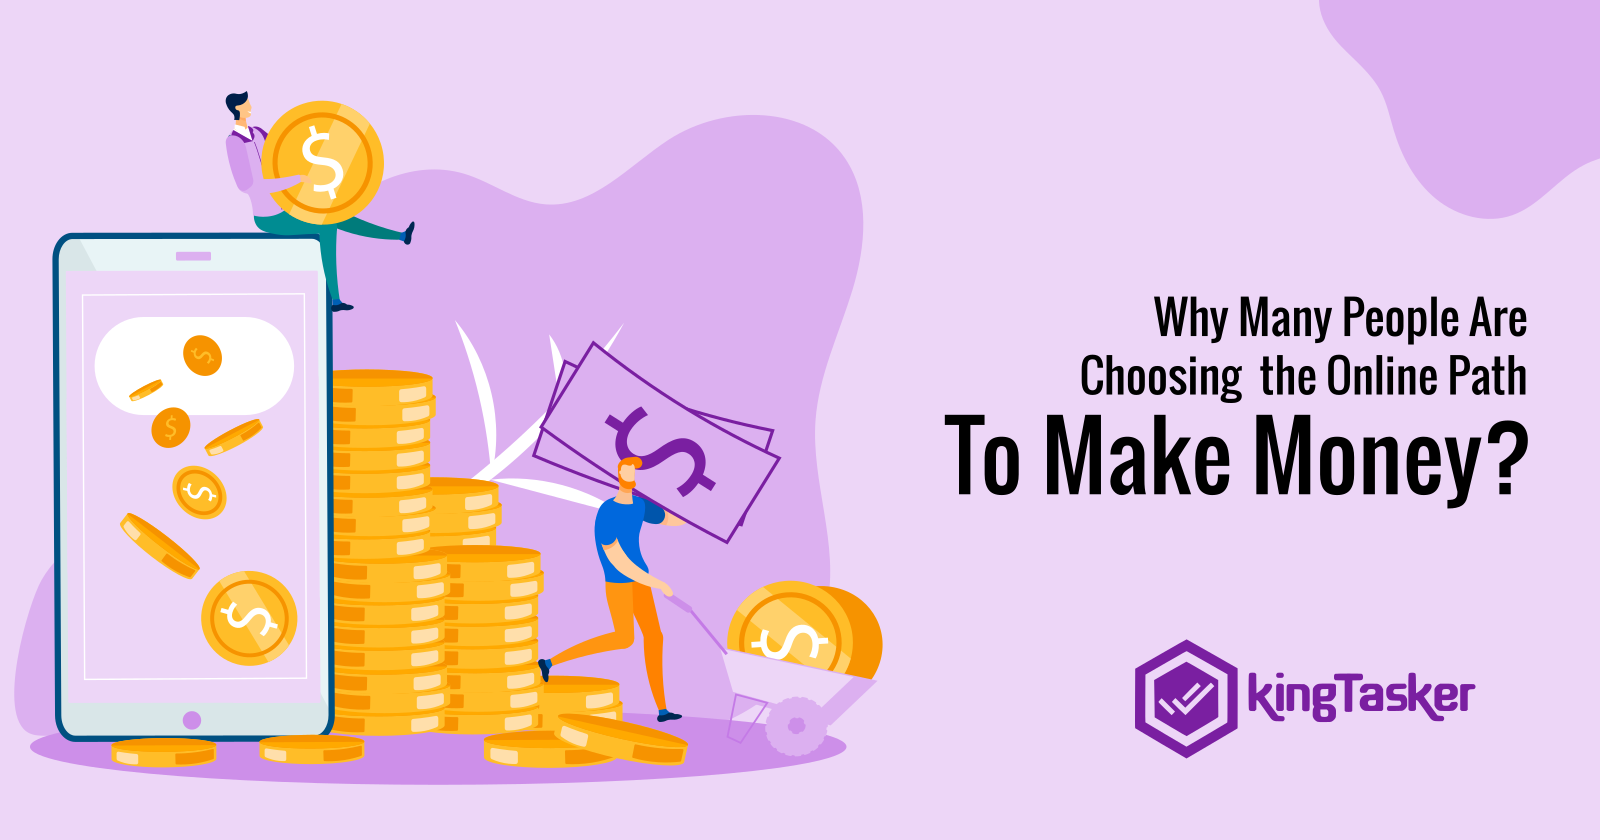 Why Many People Are Choosing the Online Path To Make Money?